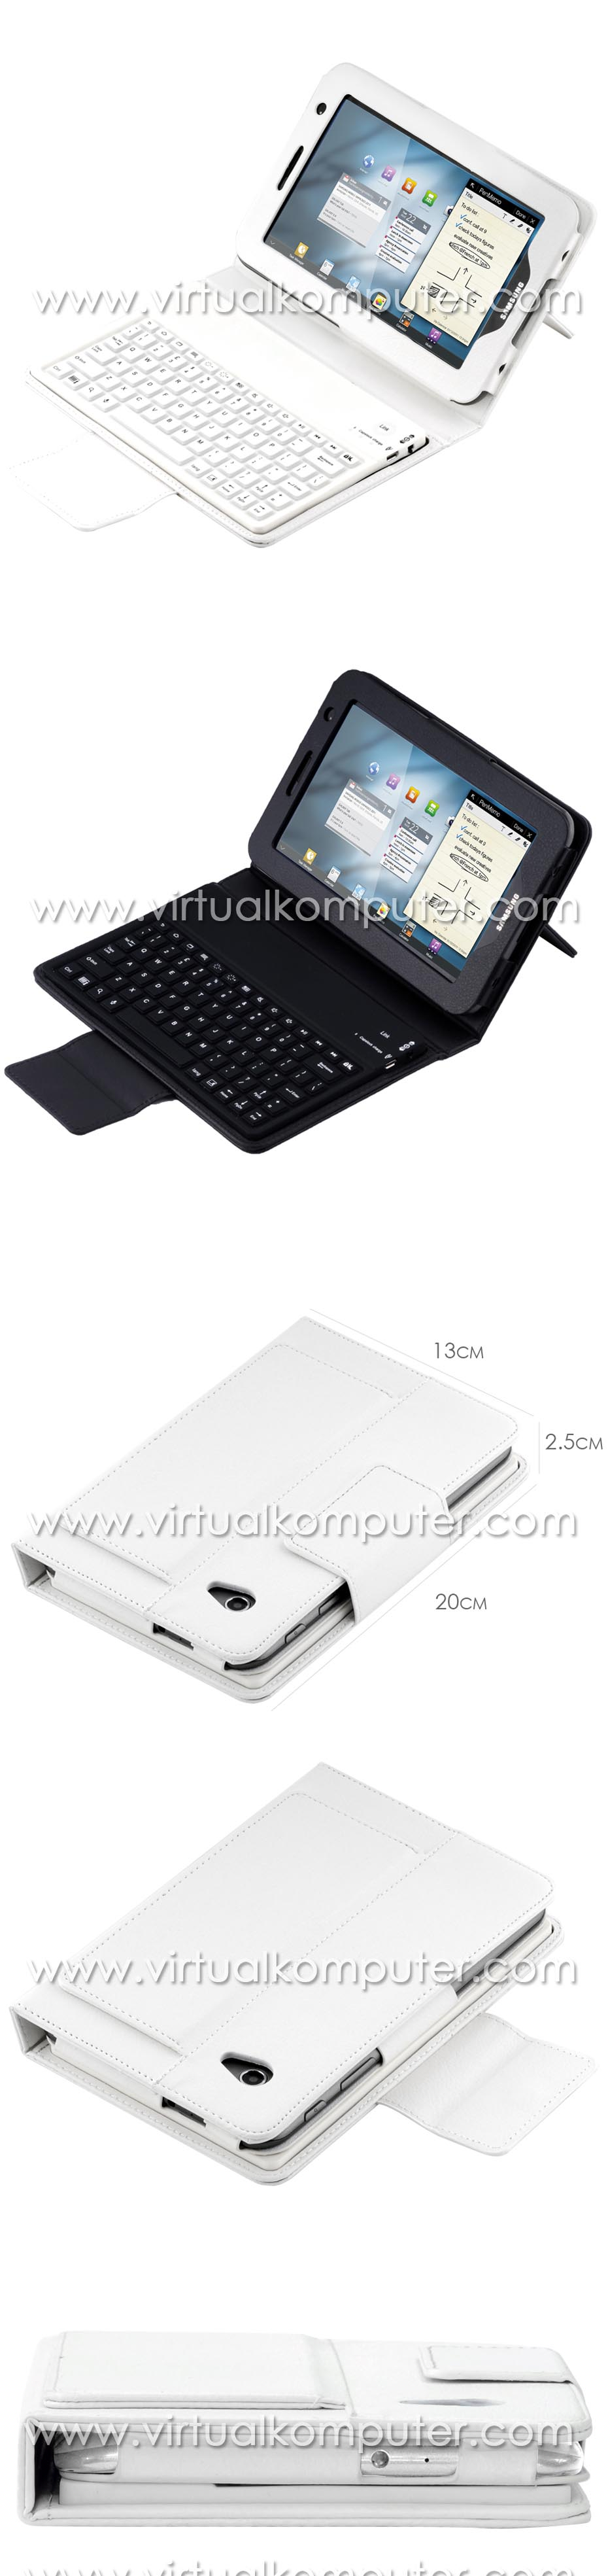 Keyboard Case for Samsung Galaxy Tab 7.0 P3100, P6200 Overview